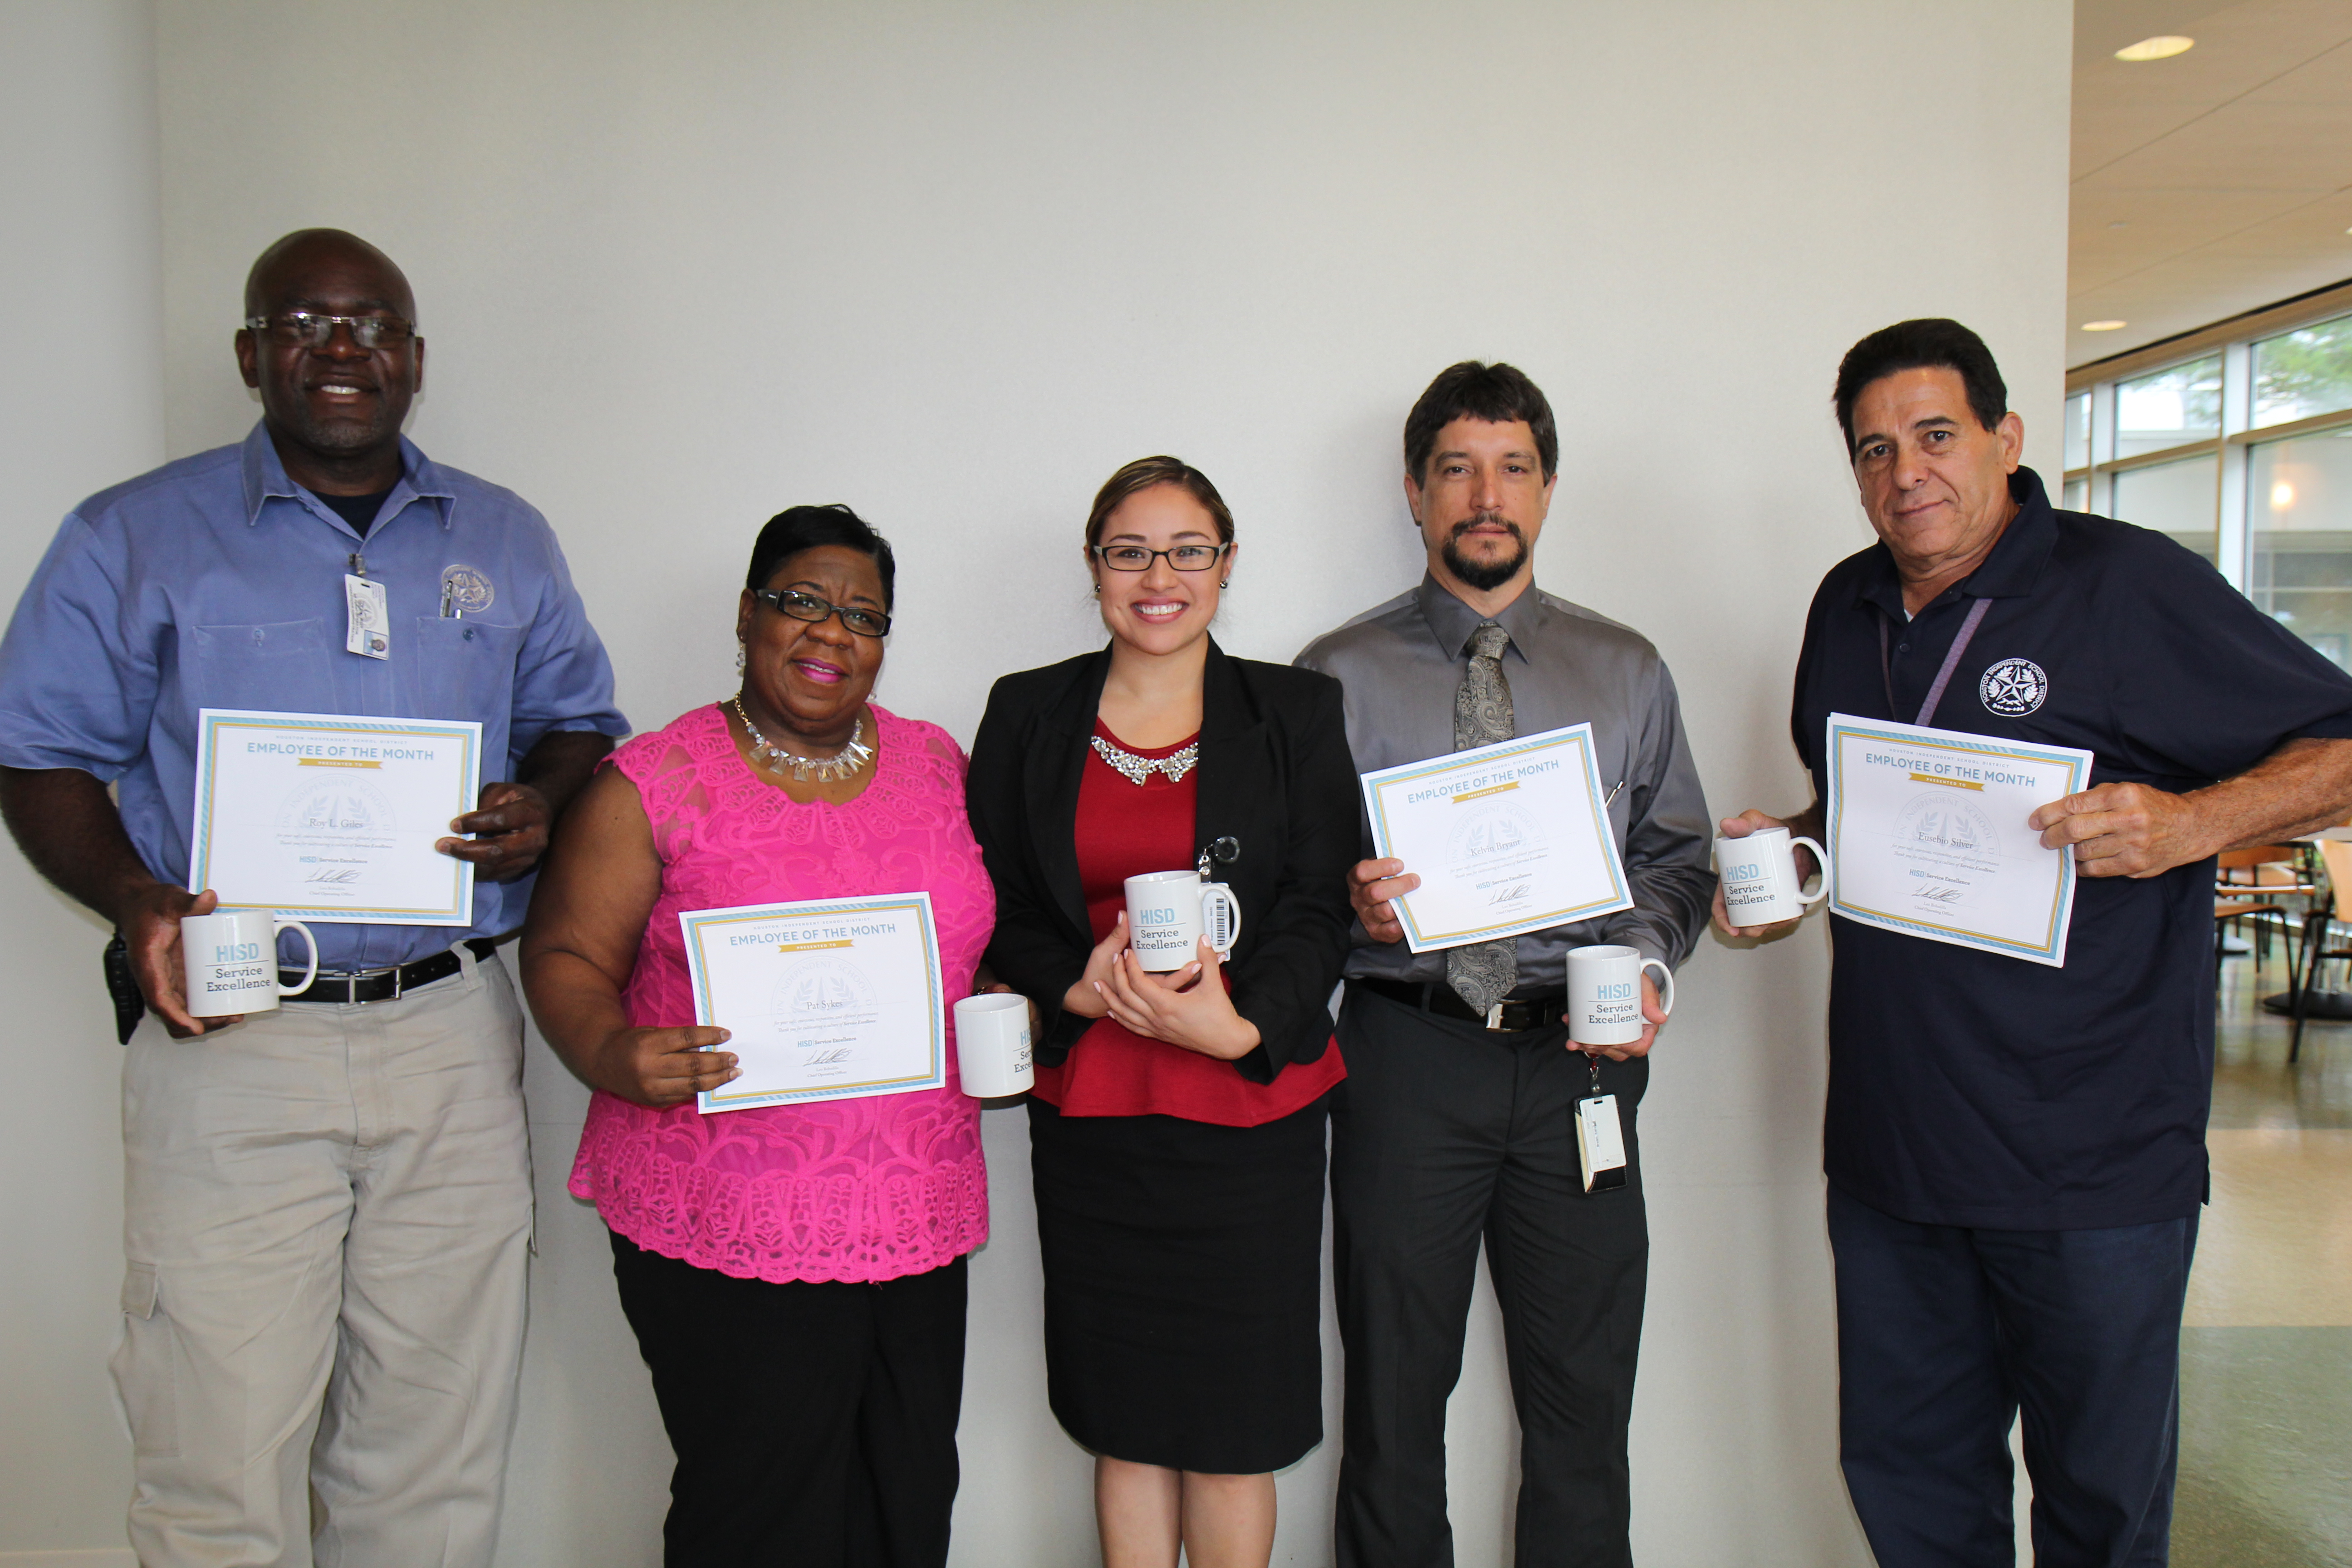 From left to right): Roy Giles, Pat Sykes, HISD Sr. Business Analyst ...